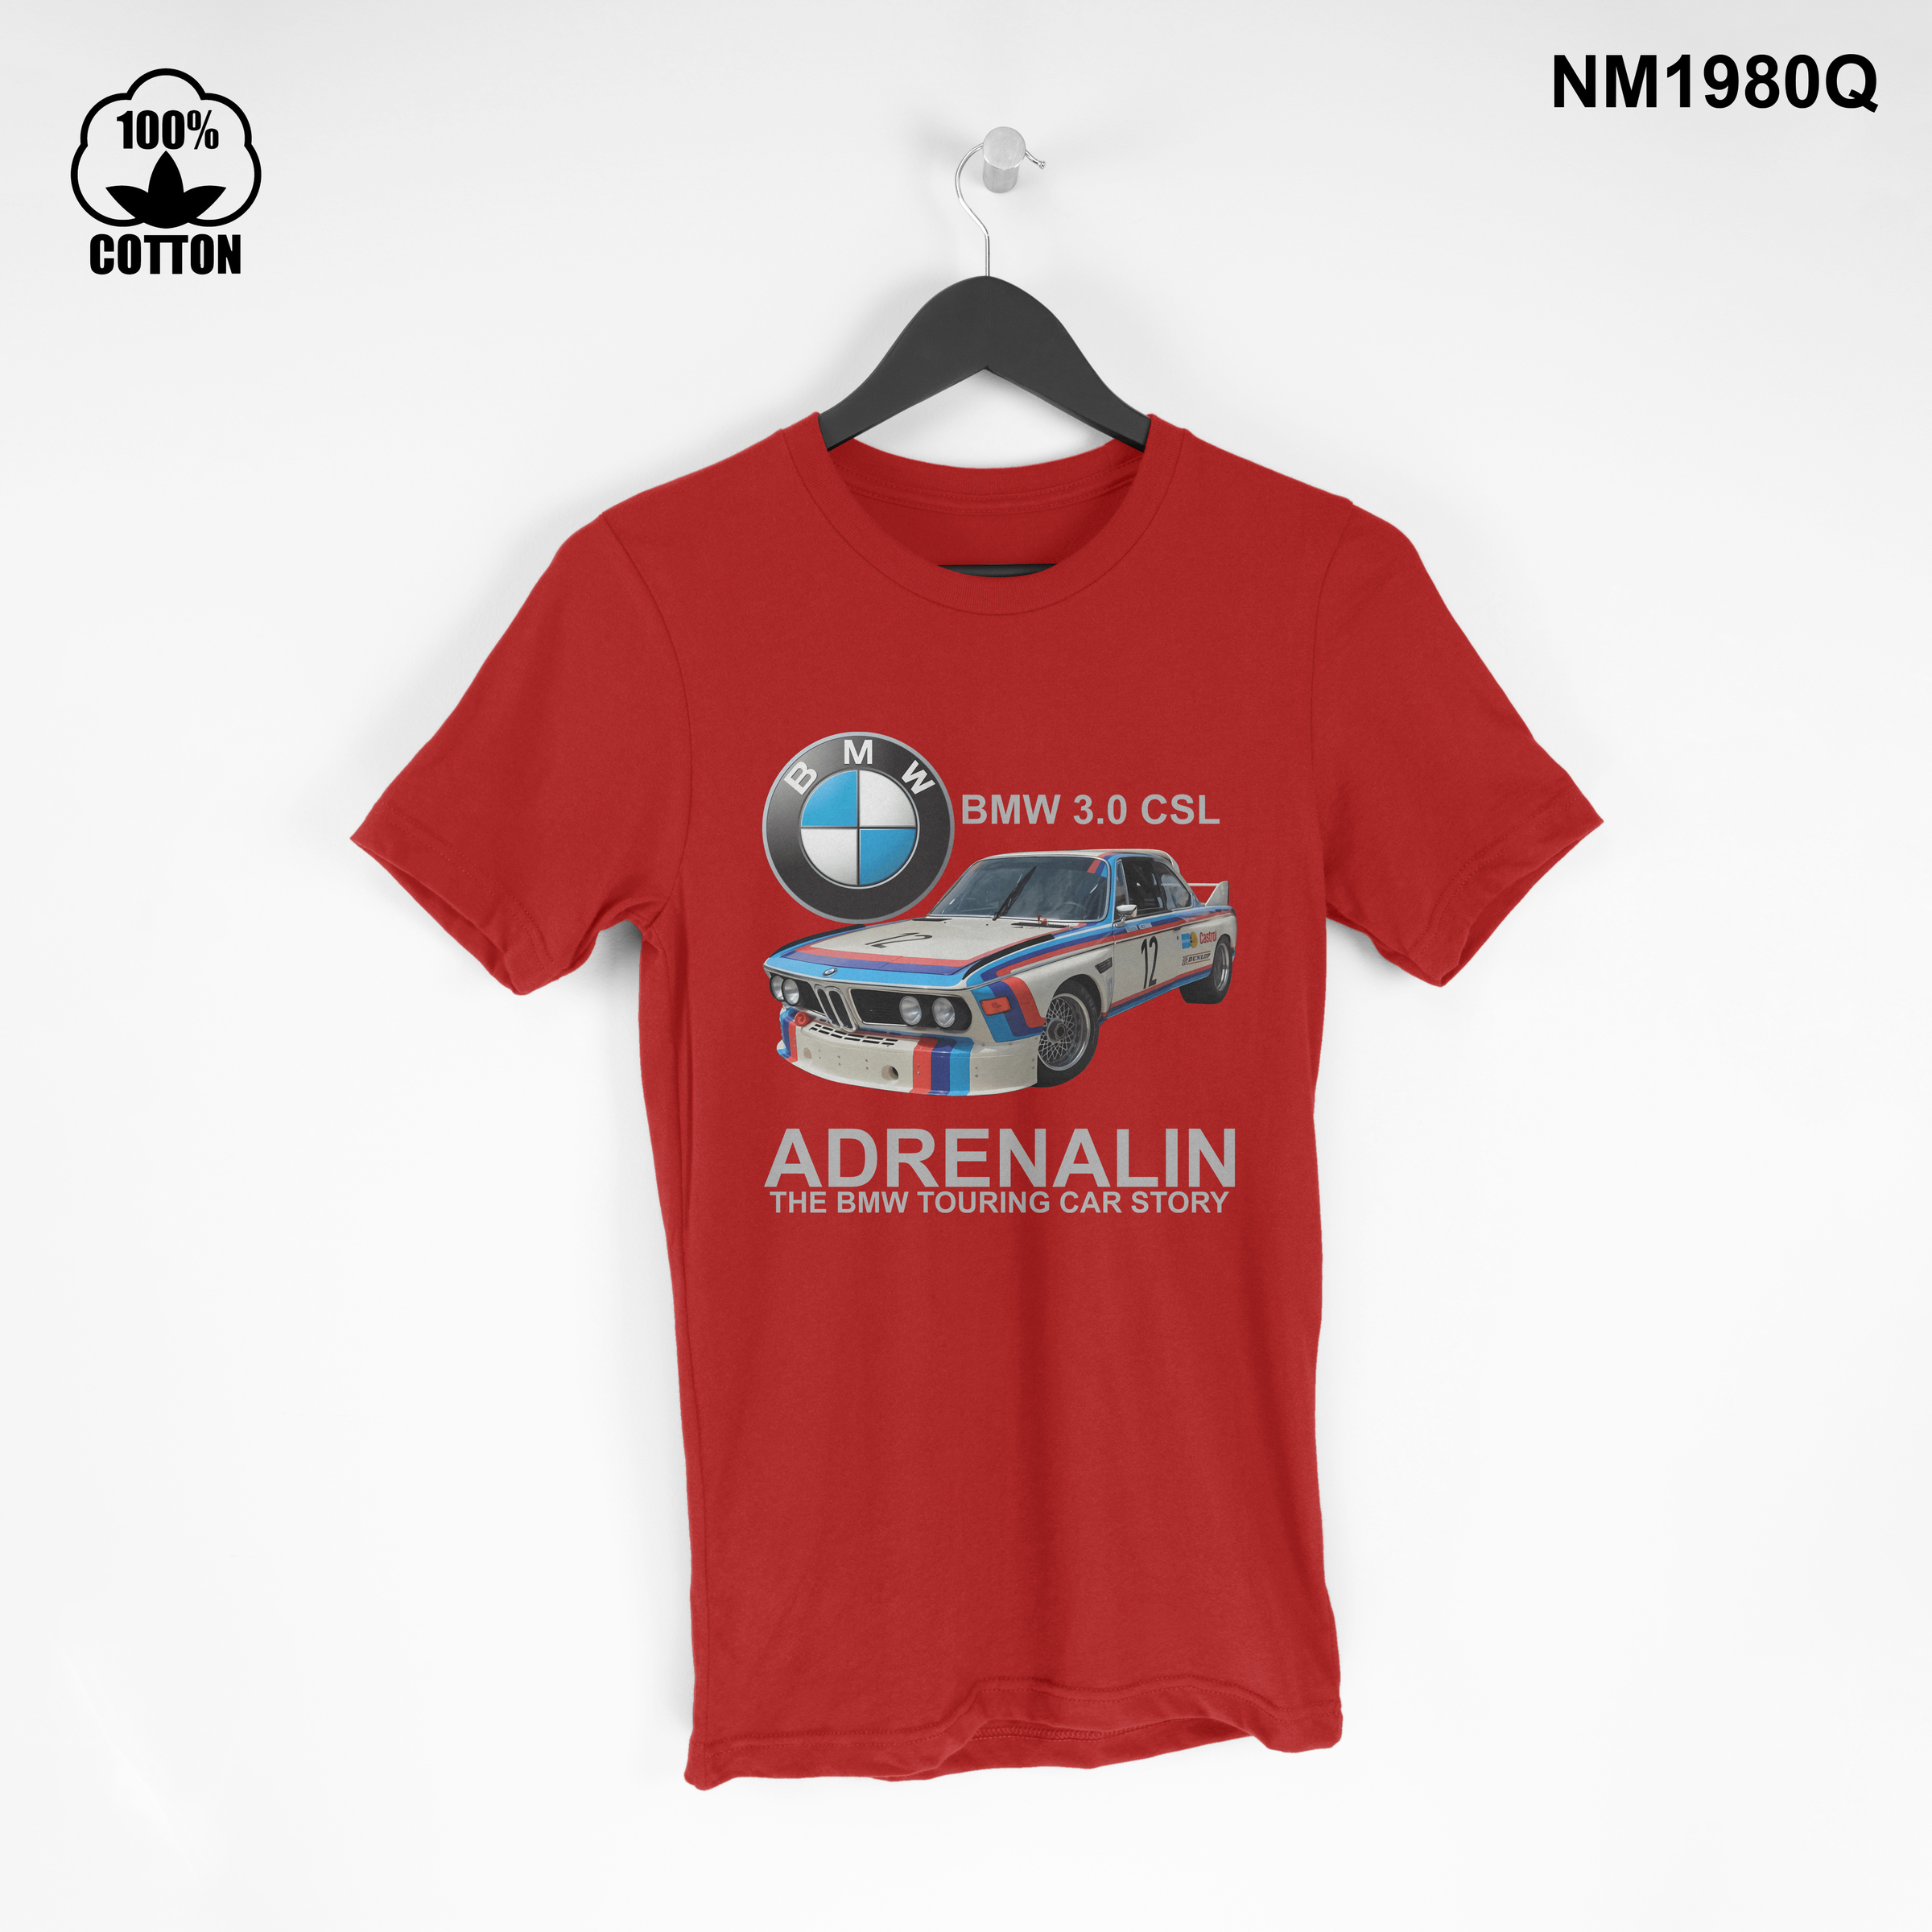 1.45 New Item ADRENALIN The BMW Touring Car Story T Shirt Tee Unisex red.jpg